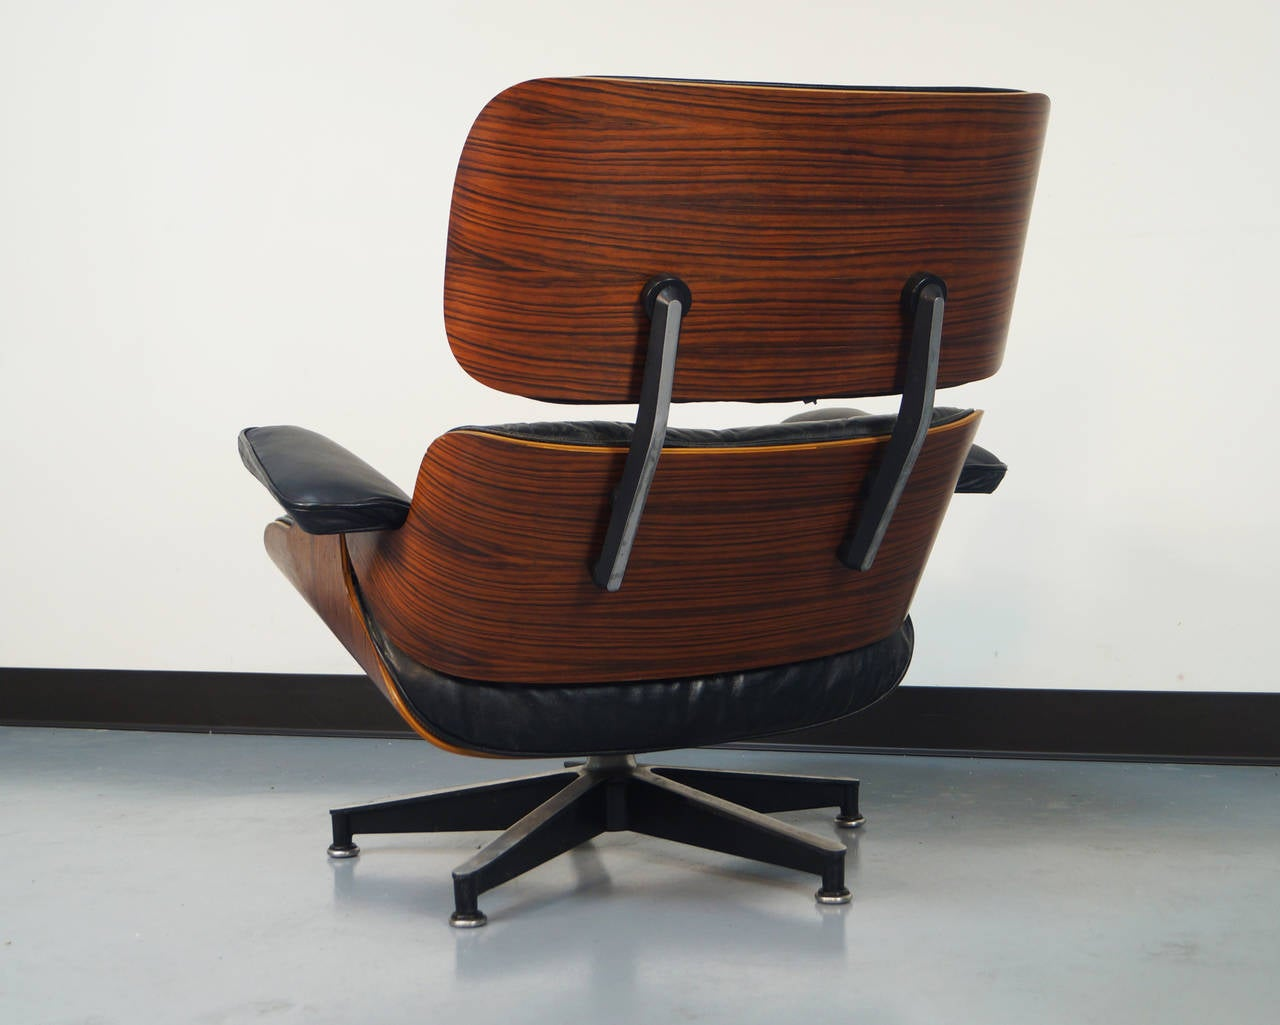 Rosewood charles eames lounge chair and ottoman for herman miller at 1stdibs - Eames chair herman miller ...